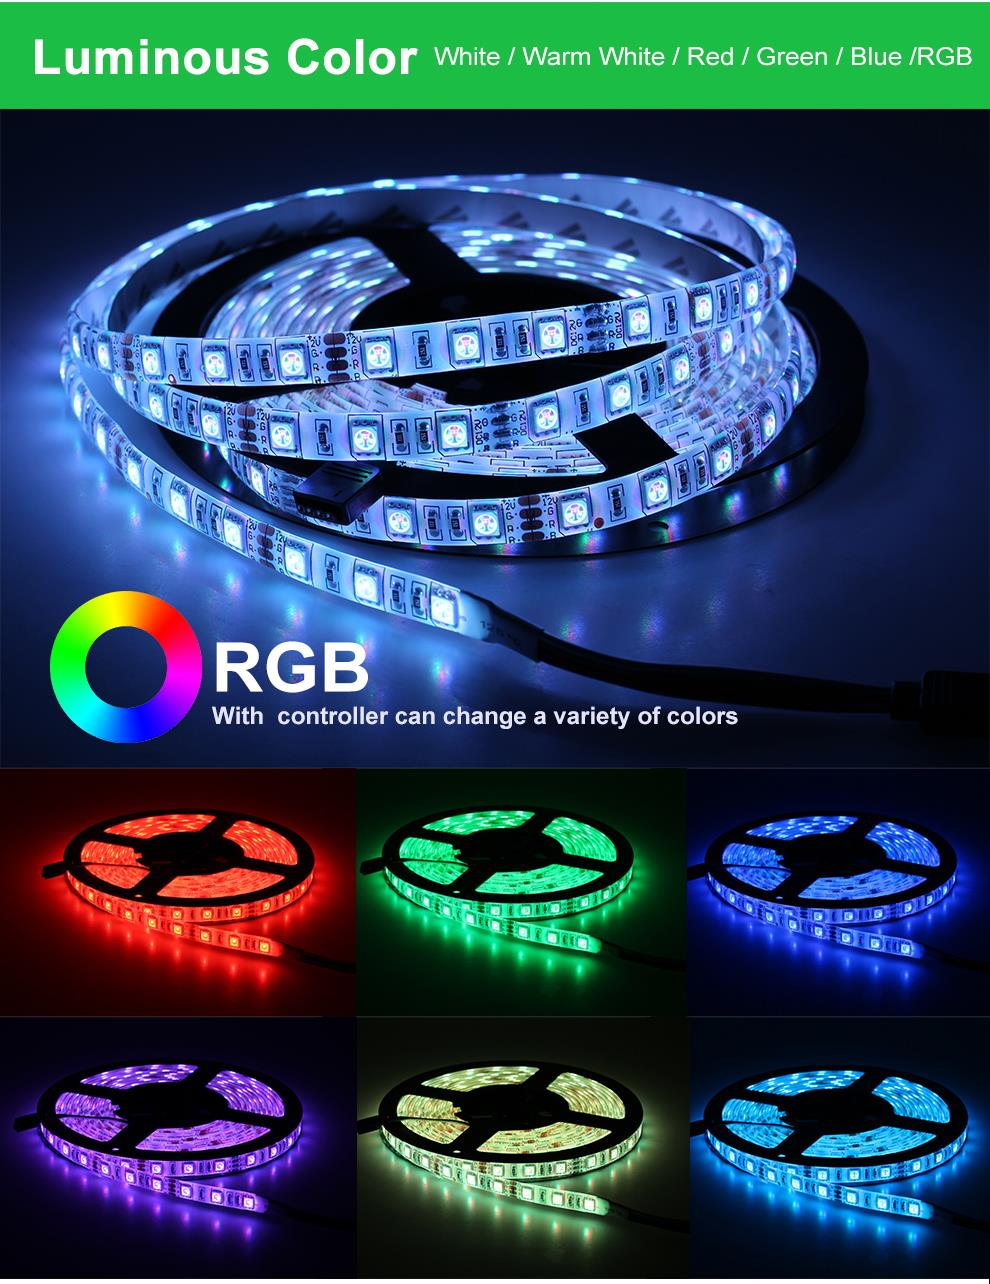 HTB1CEzaQkvoK1RjSZFwq6AiCFXah LED Strip 5050 2835 DC12V Flexible LED Light Tape 60LEDs/M White / Warm White / Blue / Green / Red Waterproof RGB LED Strip 5M